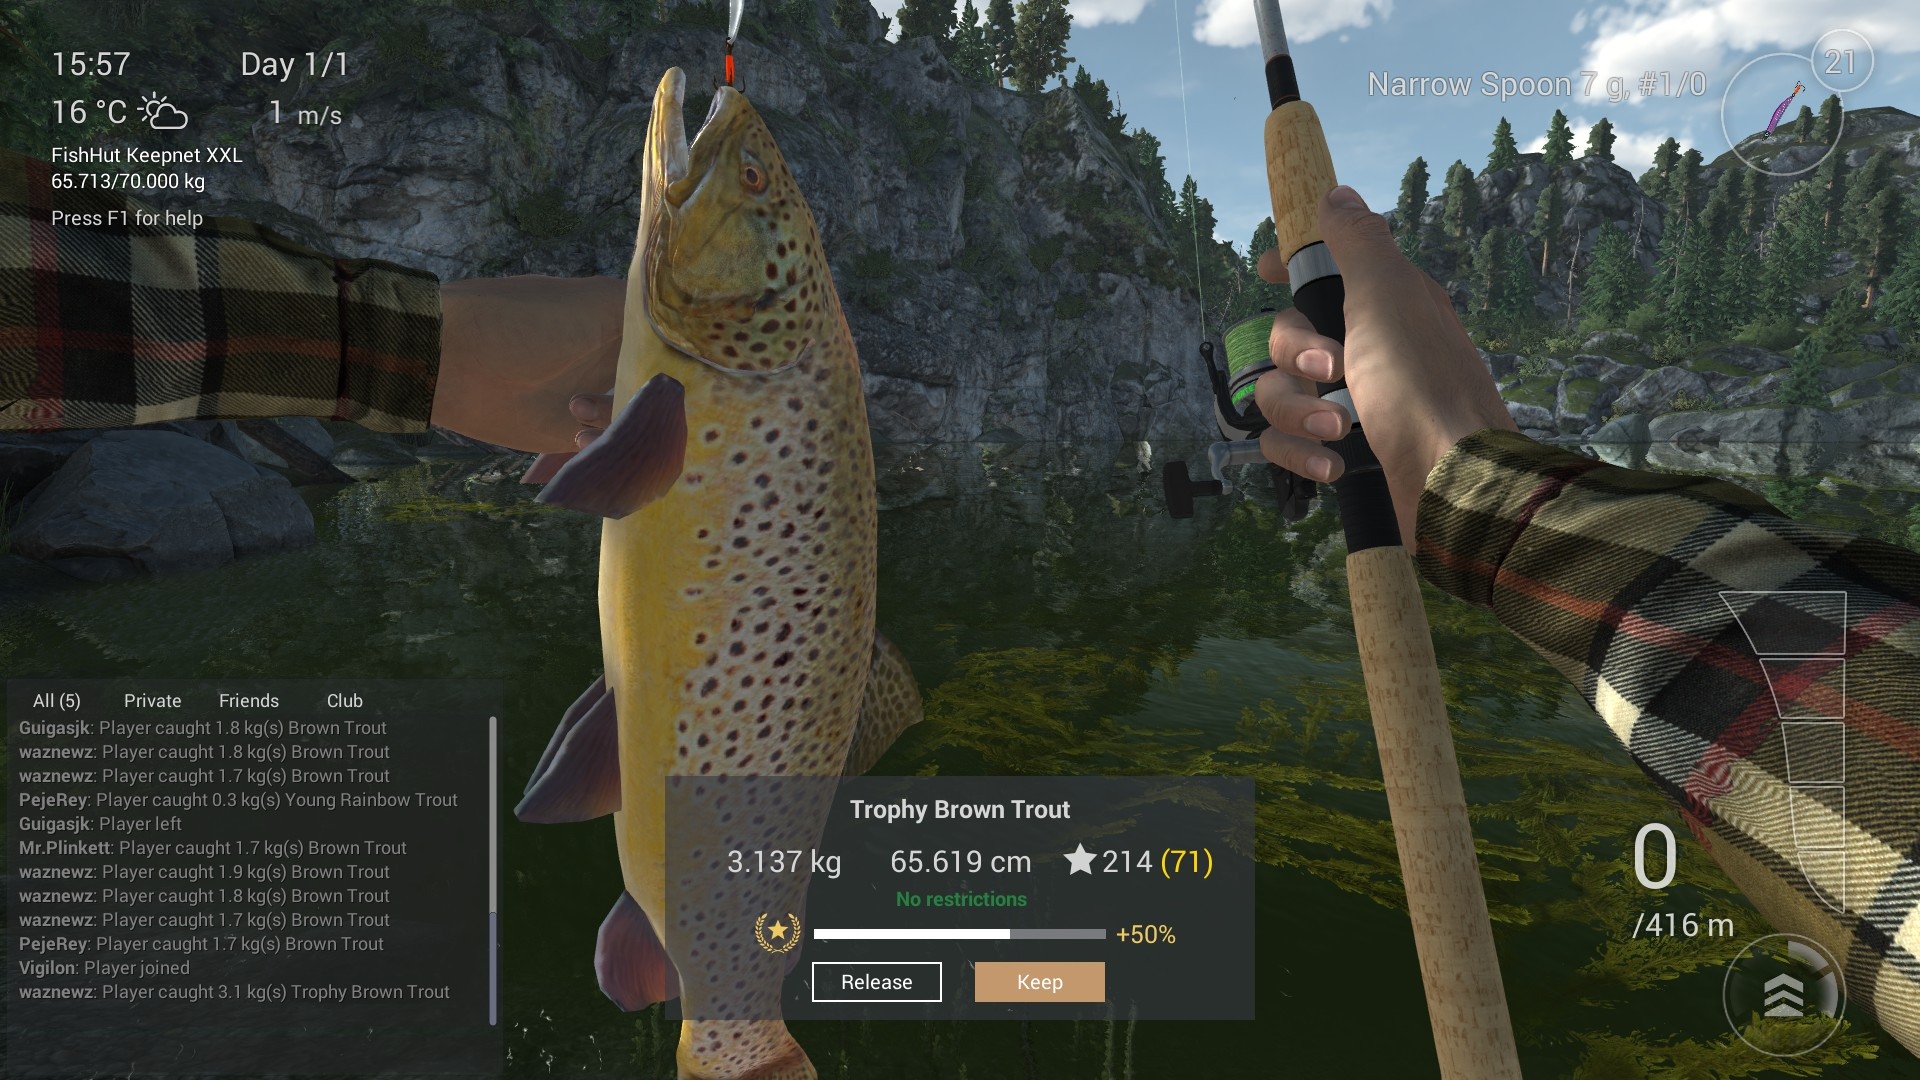 Steam Community :: Guide :: Oregon - Uni/Trophy Rainbow Trout